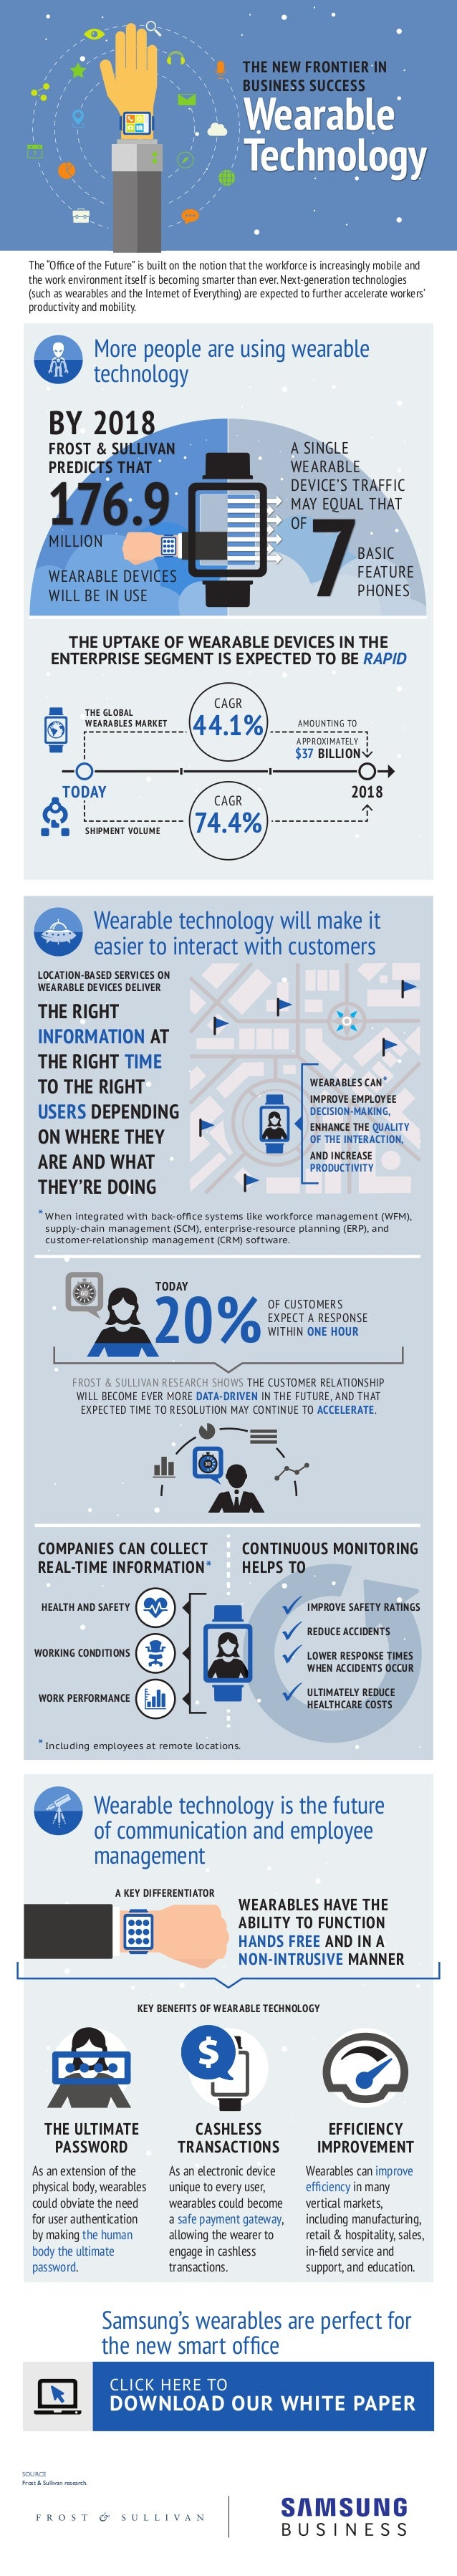 SOURCE Frost & Sullivan research. More people are using wearable technology Samsung's wearables are perfect for the new sm...